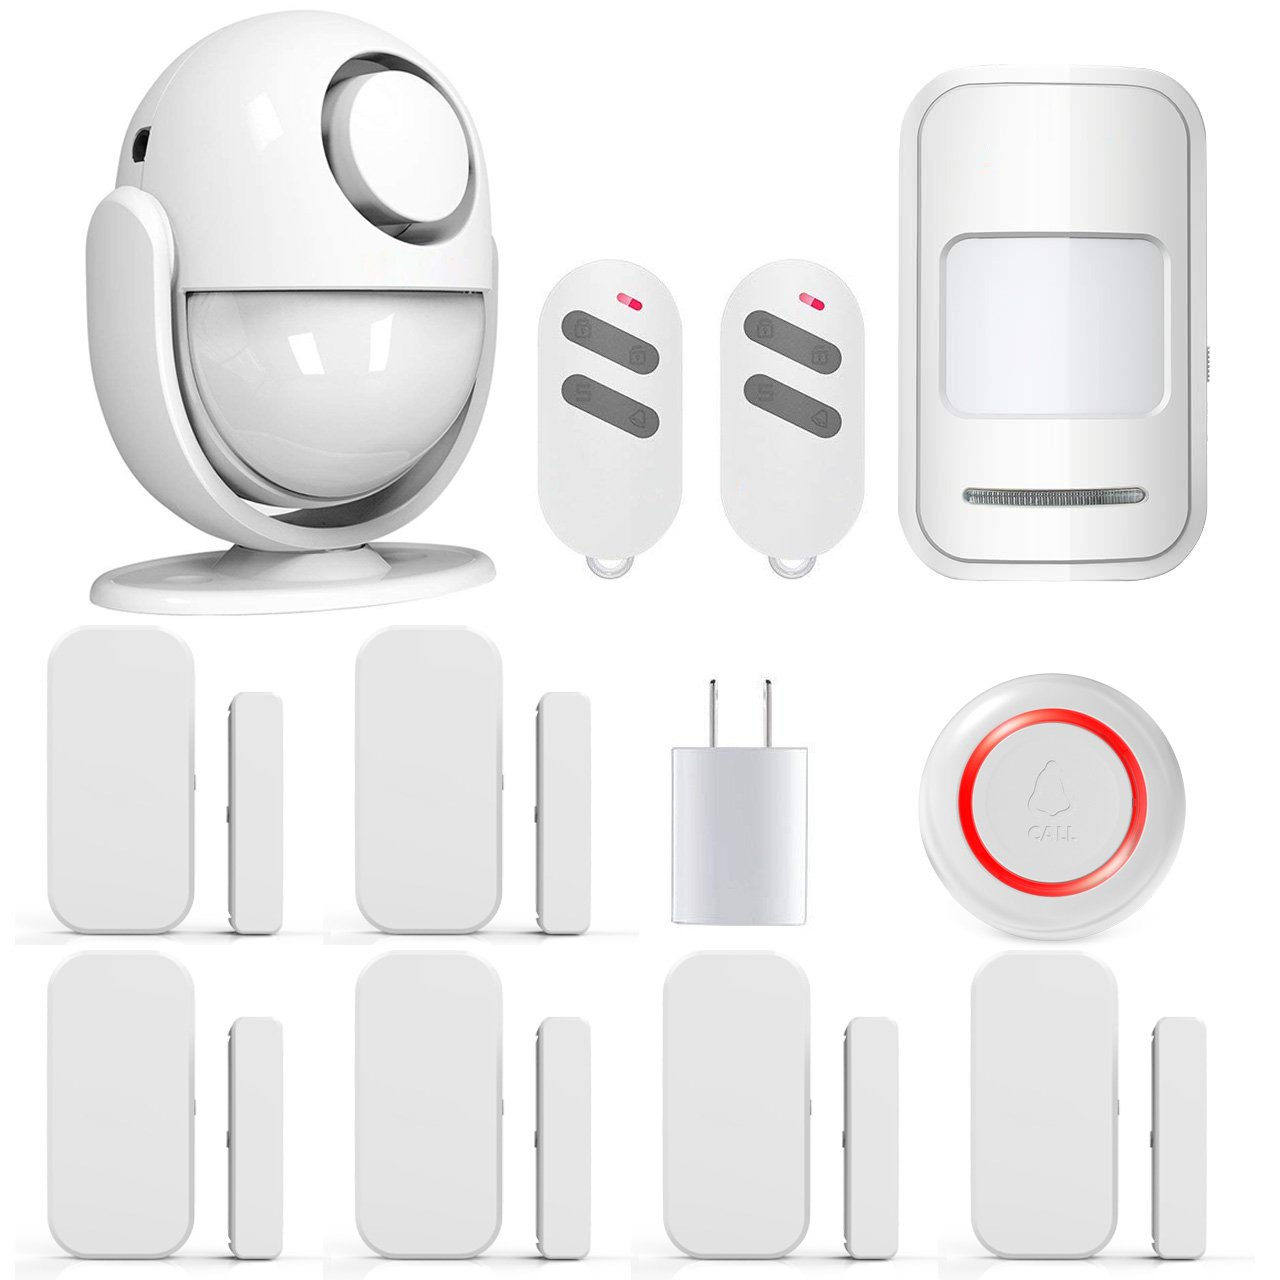 PANNOVO Wireless Home Security Alarm System Door Alarm System for Home DIY Kit,Supports Amazon Alexa, App Control by iOS Andrioid Smartphone with PIR ...